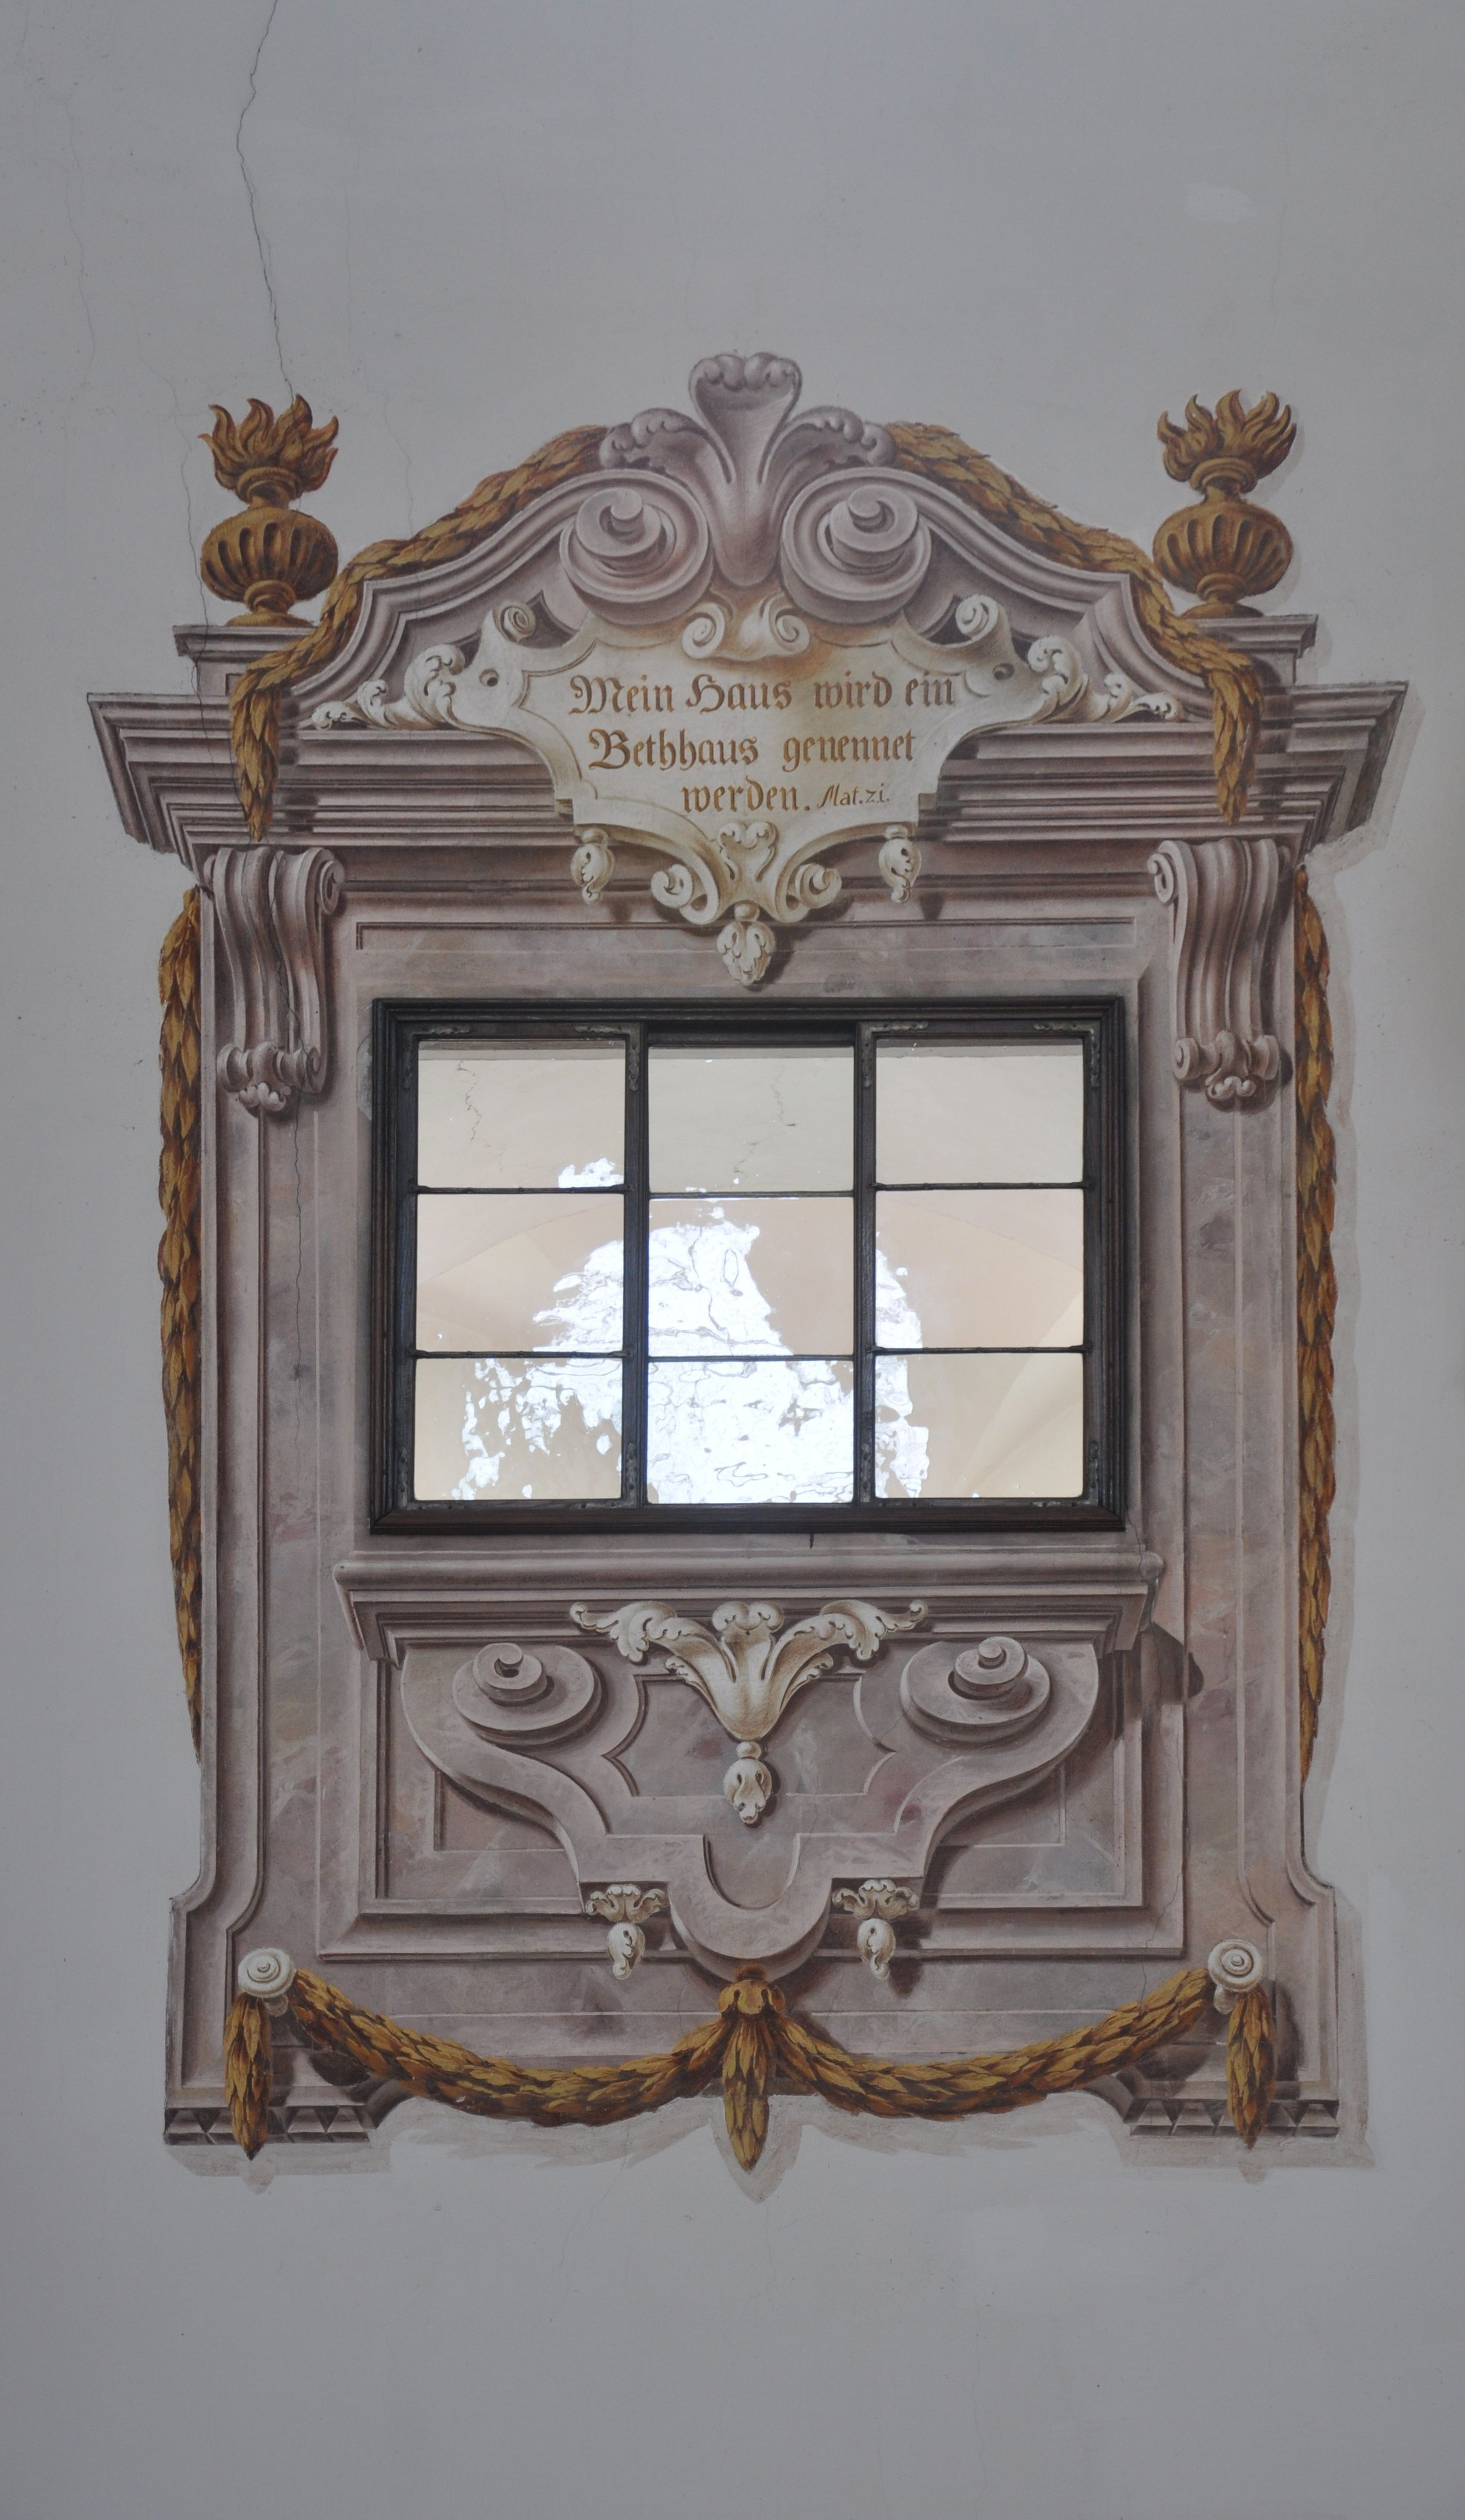 Painted Architectural Embellishment Around A Plain Window In A Plain Stucco Wall Decorative